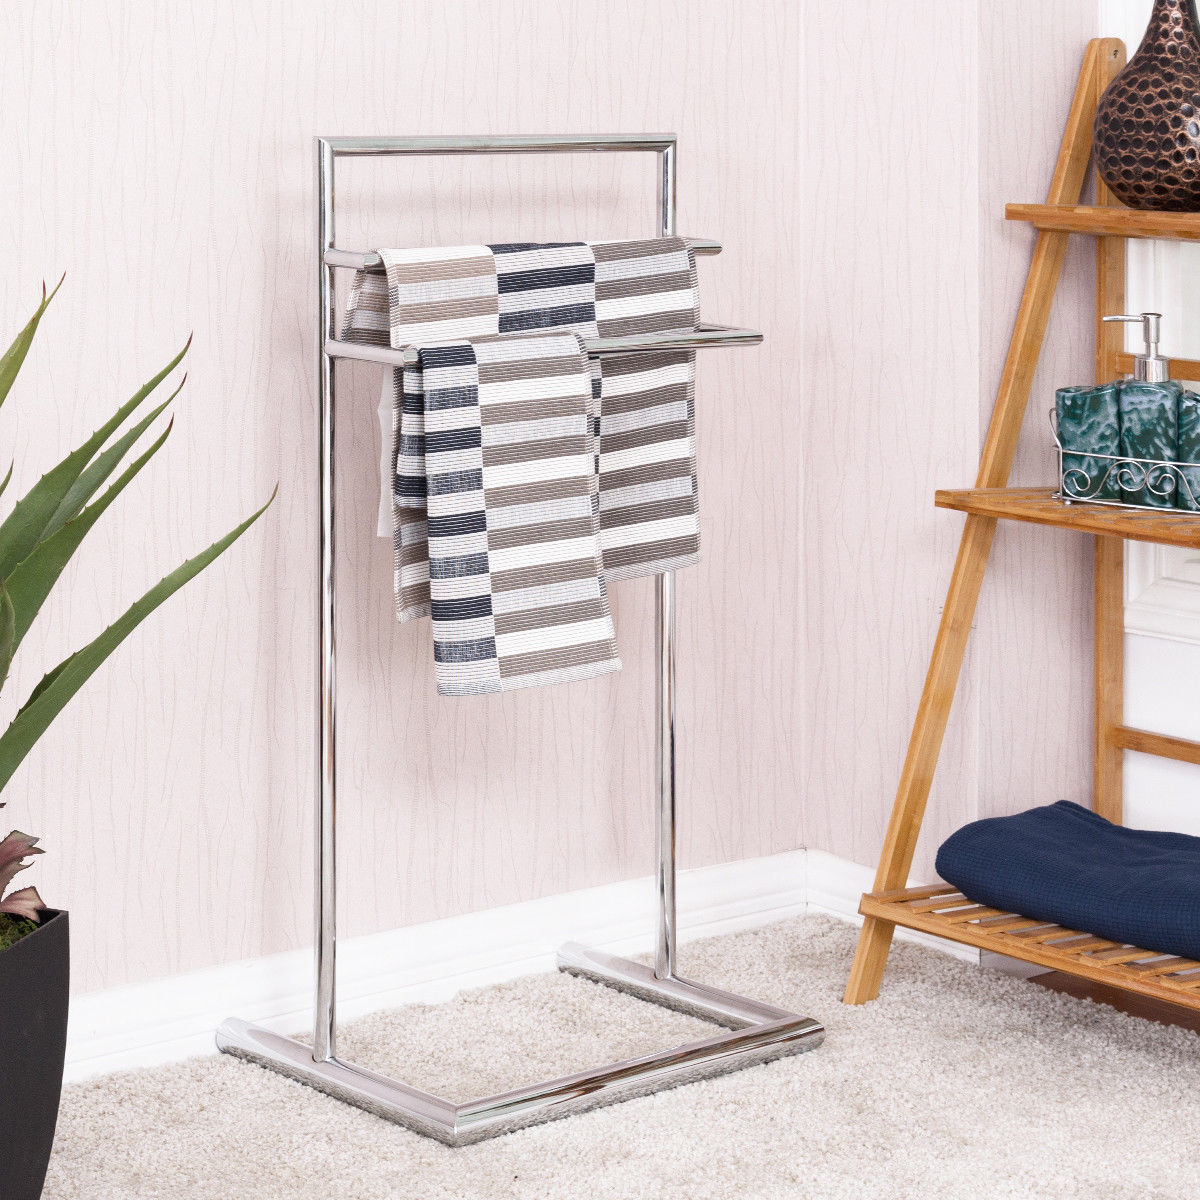 Costway 3 Tier Metal Towel Rack Holder Floor Stand Free Standing